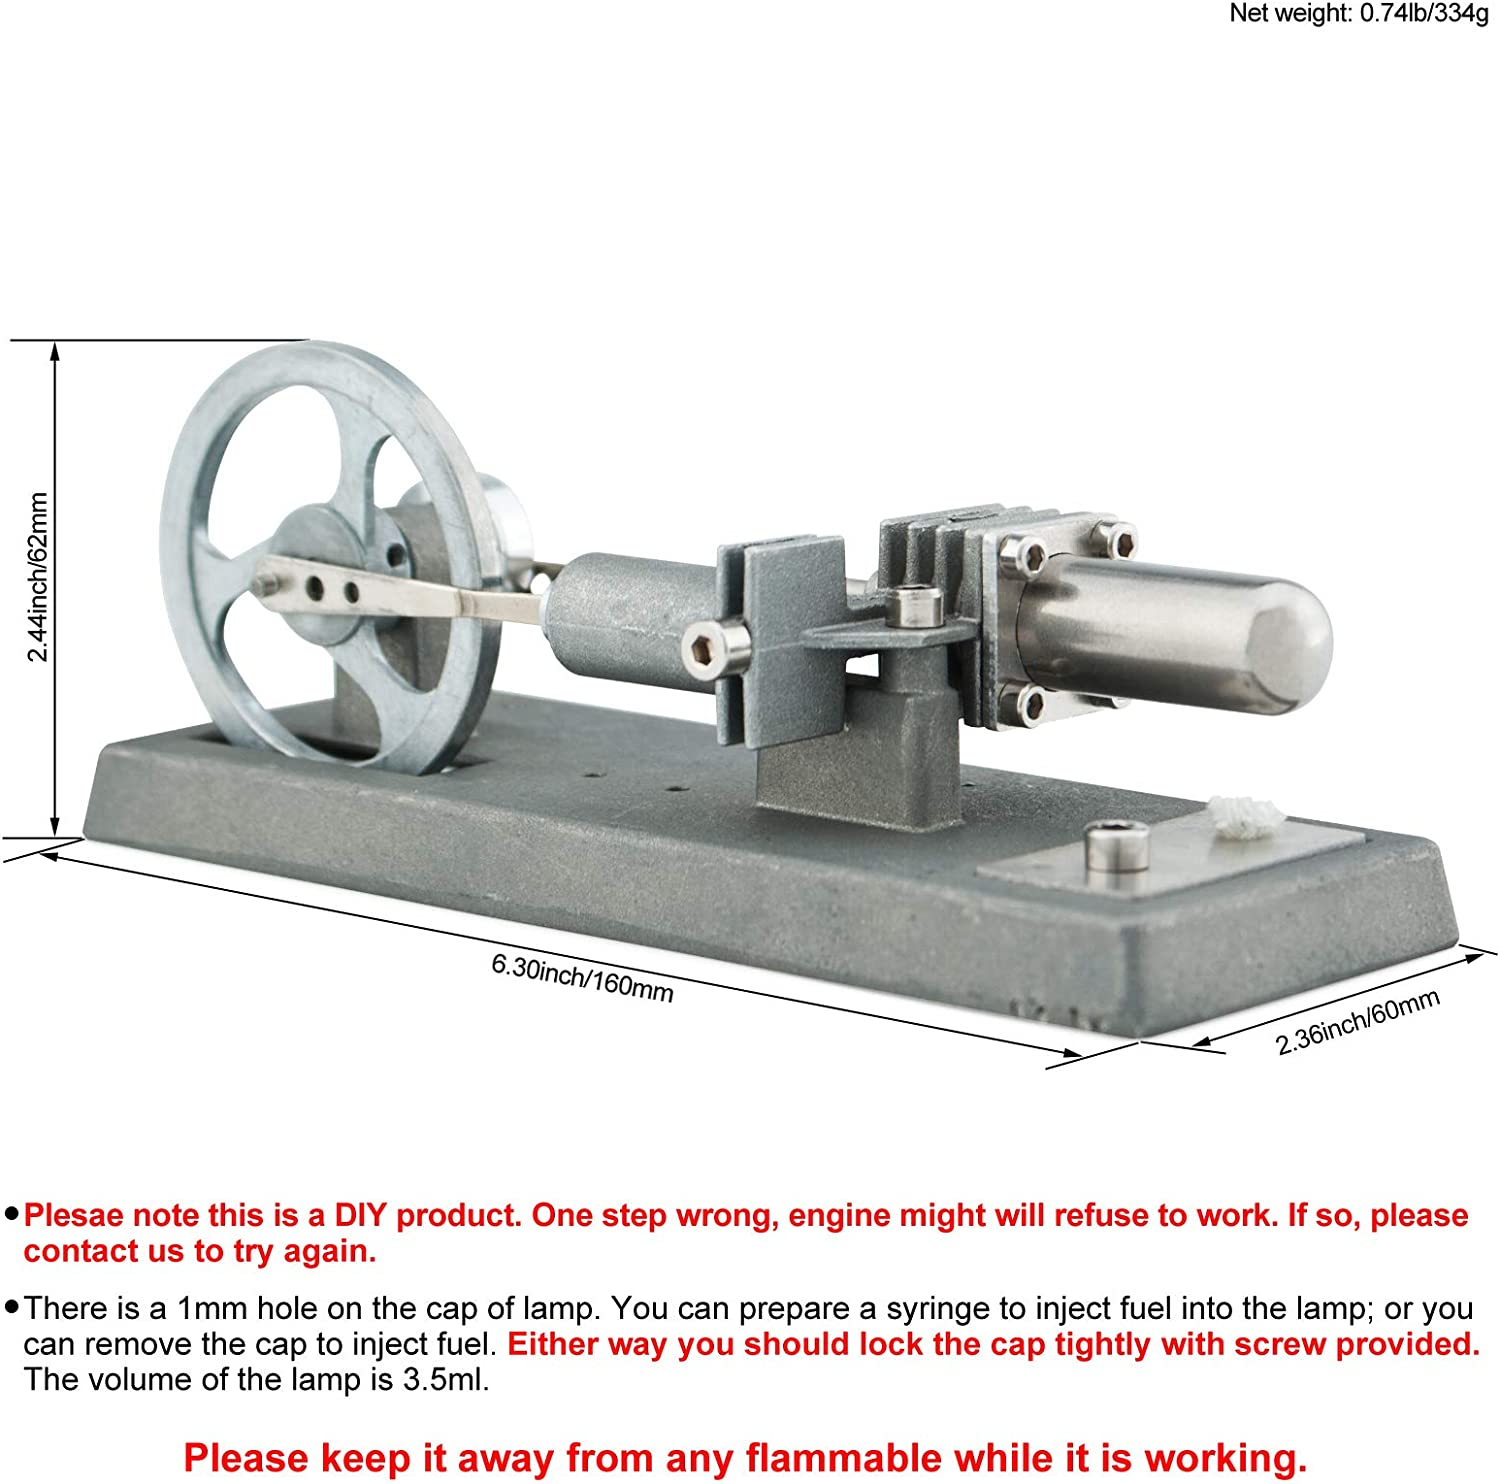 DjuiinoStar Hot Air Stirling Engine Assembly Kit: Spend 30 Minutes to Build...